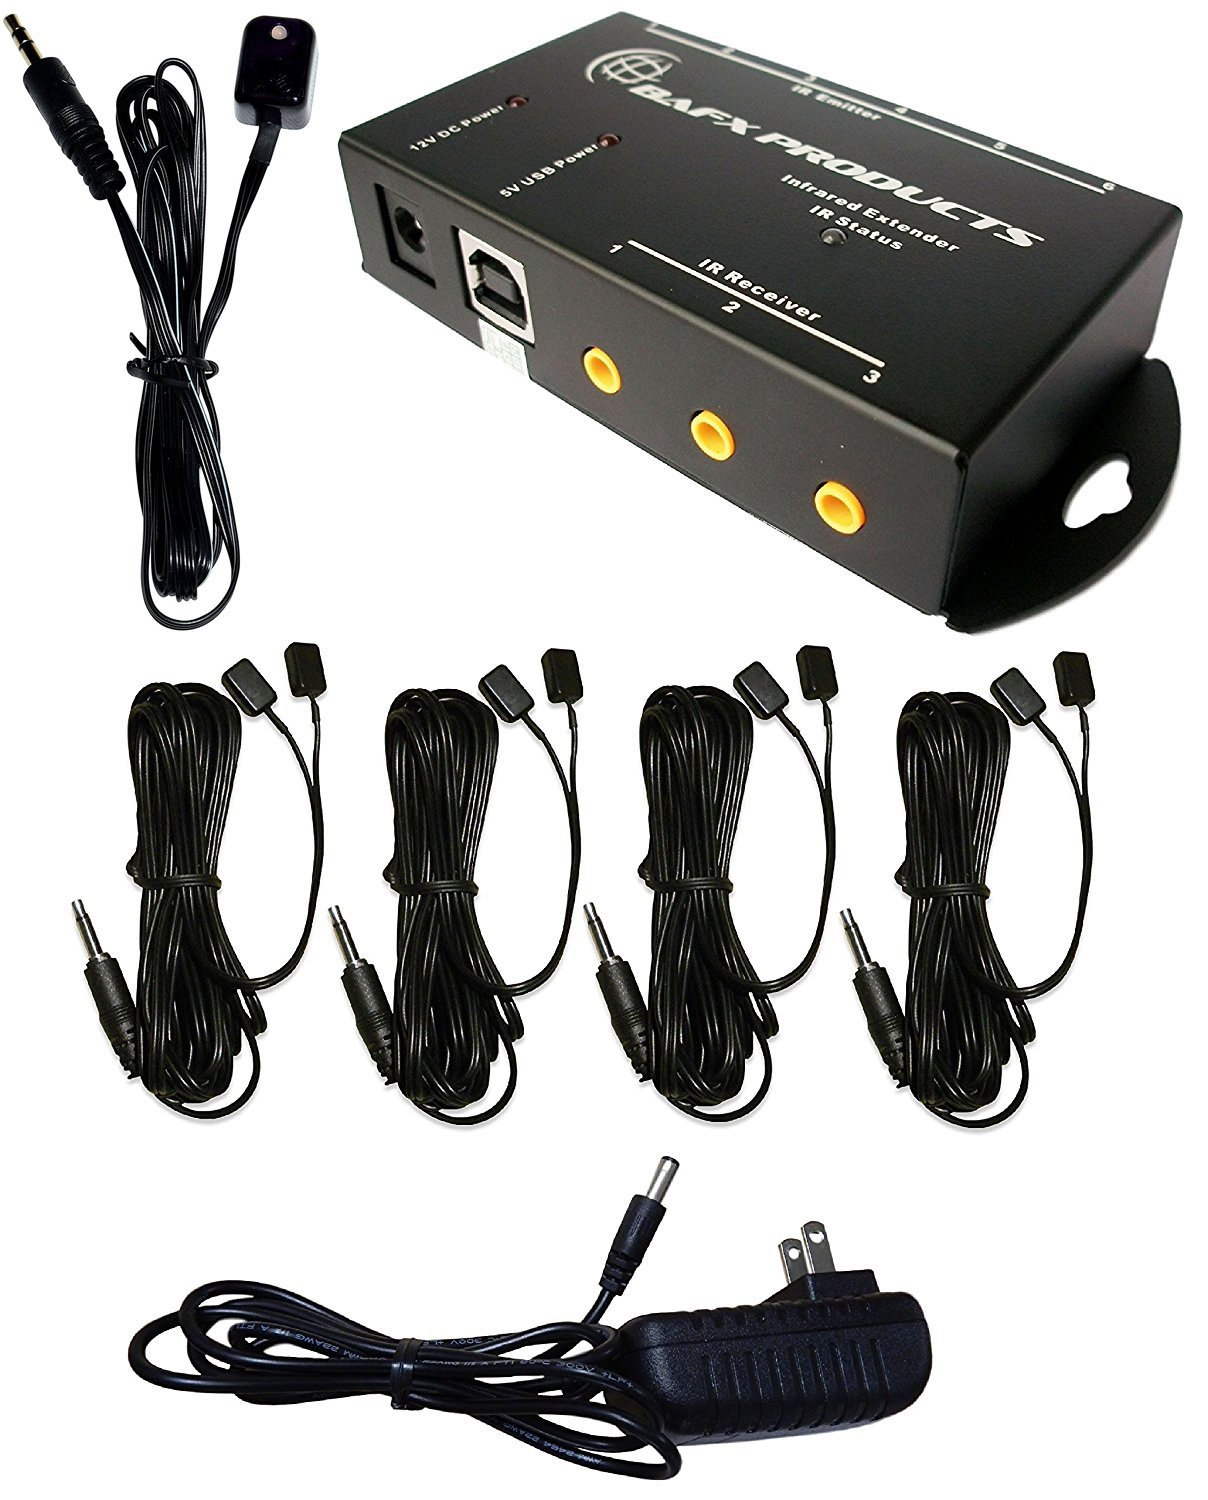 BAFX Products IR Remote Control Extender/IR Repeater Kit/BAFX3233